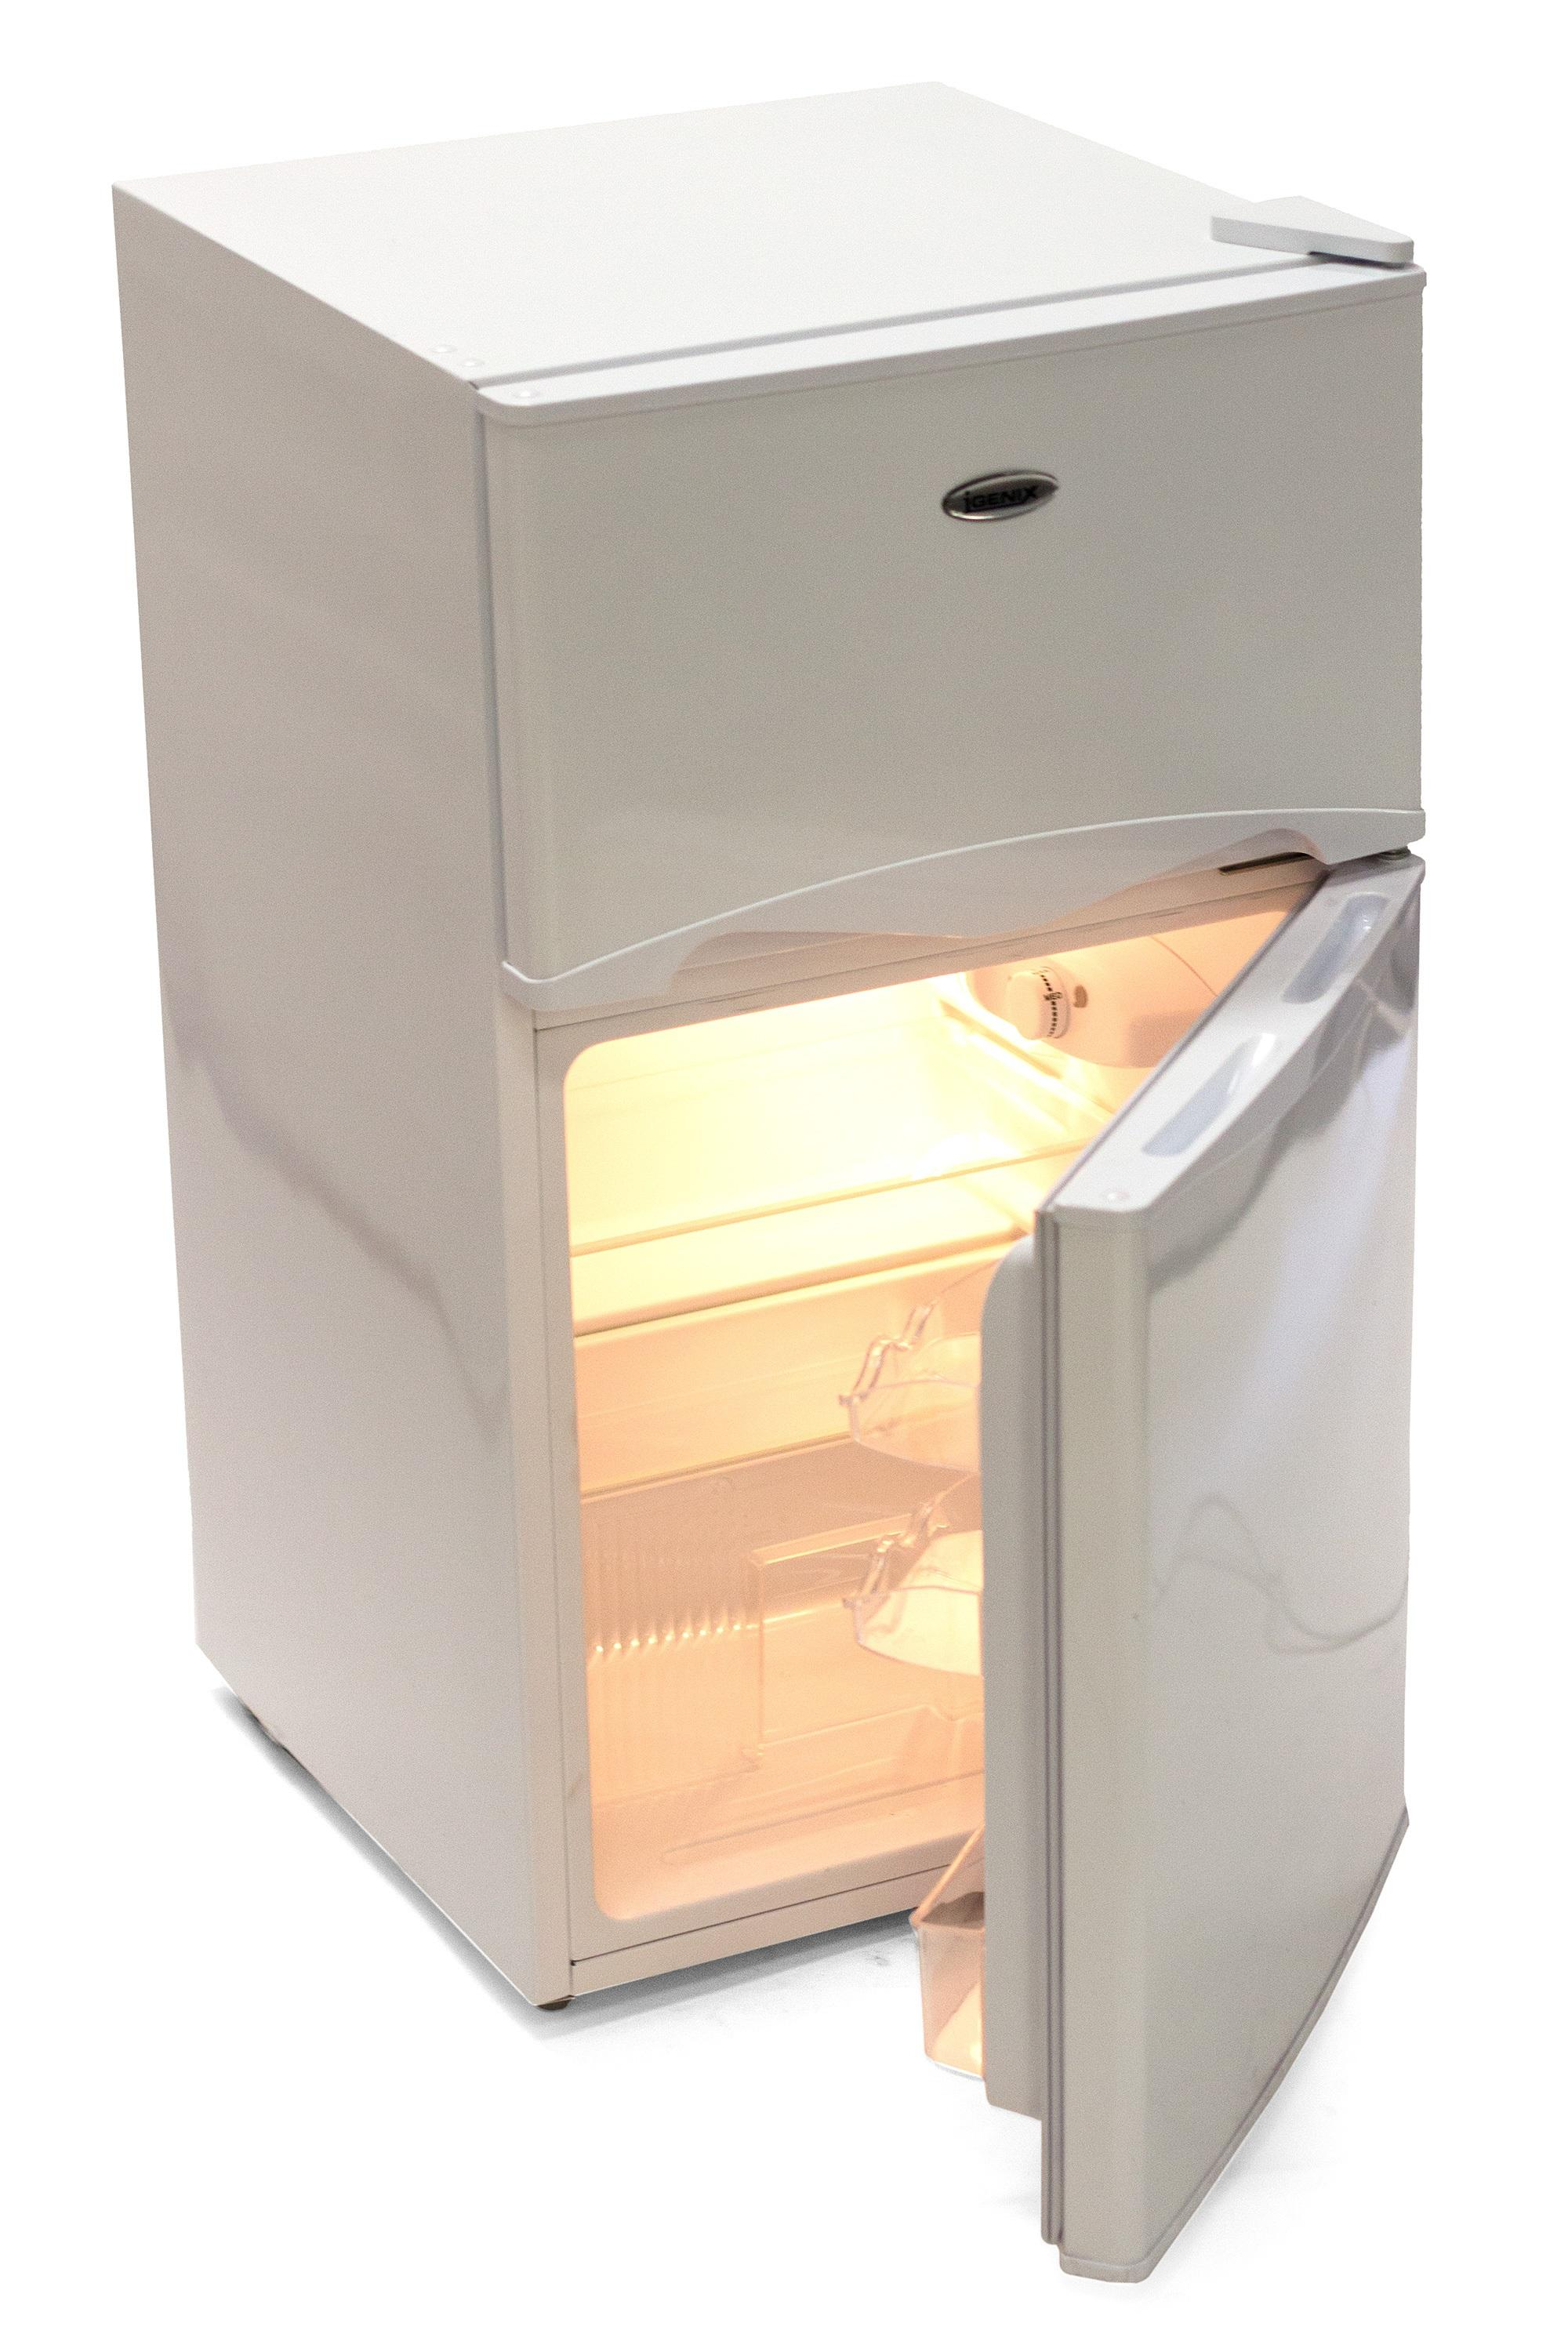 Igenix Ig347ff 47cm Under Counter Fridge Freezer White Ebay